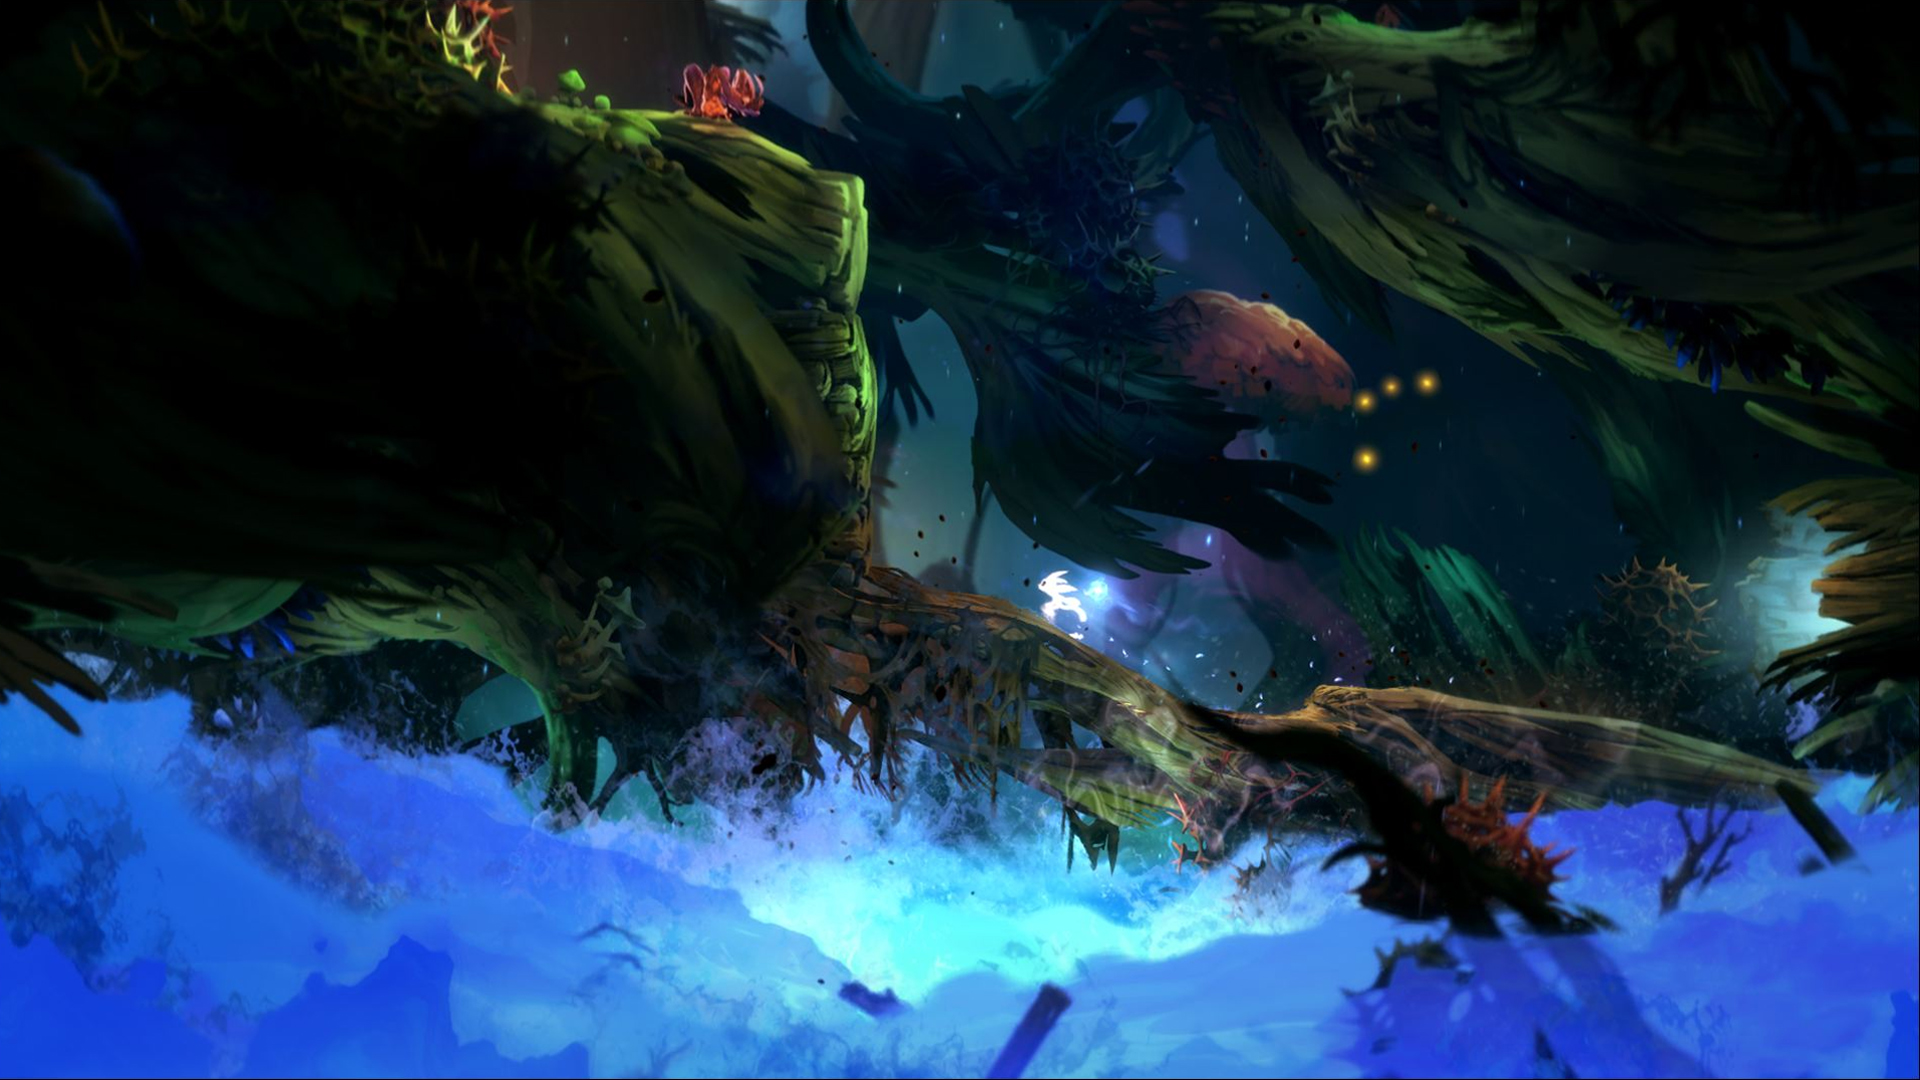 Ori And The Blind Forest Wallpapers, Pictures, Images